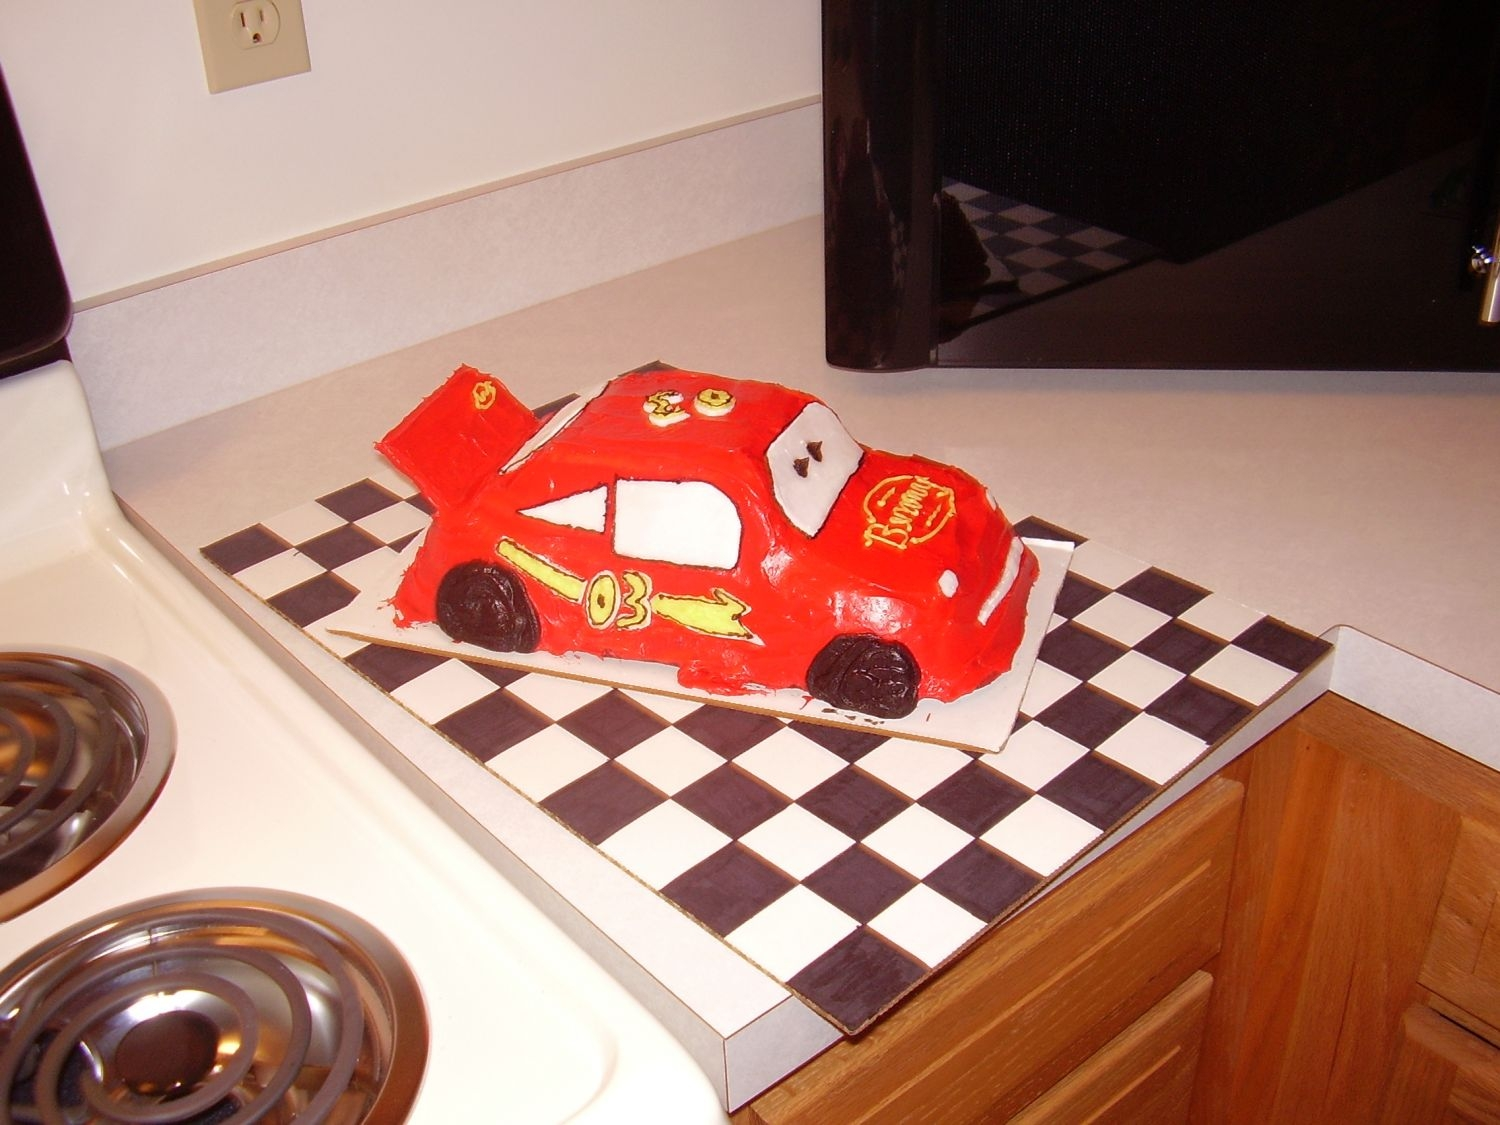 Lightning Mcqueen I made this for my 3yr olds birthday. It was my first car cake. I used the car pan. It's not the greatest but he loved it. The windows...